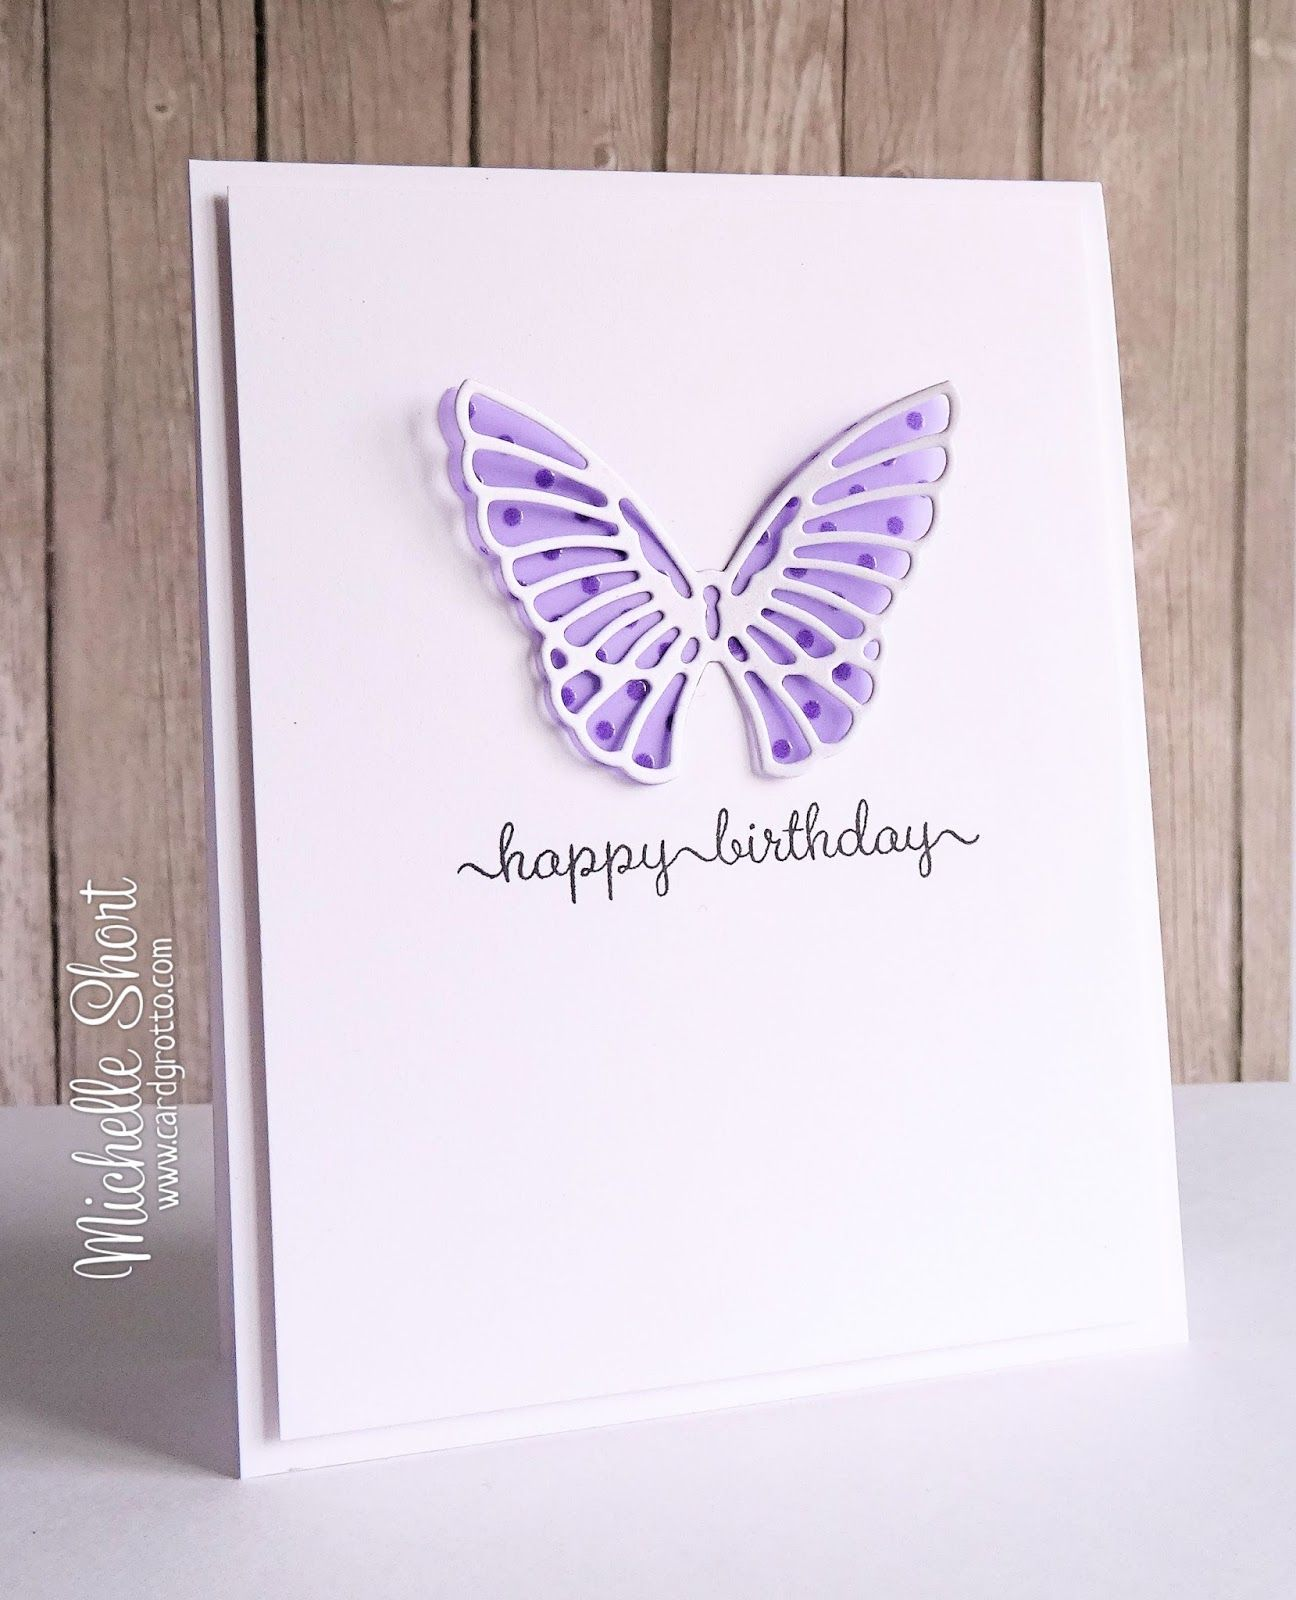 Handmade Birthday Card From The Card Grotto Butterfly Overlay